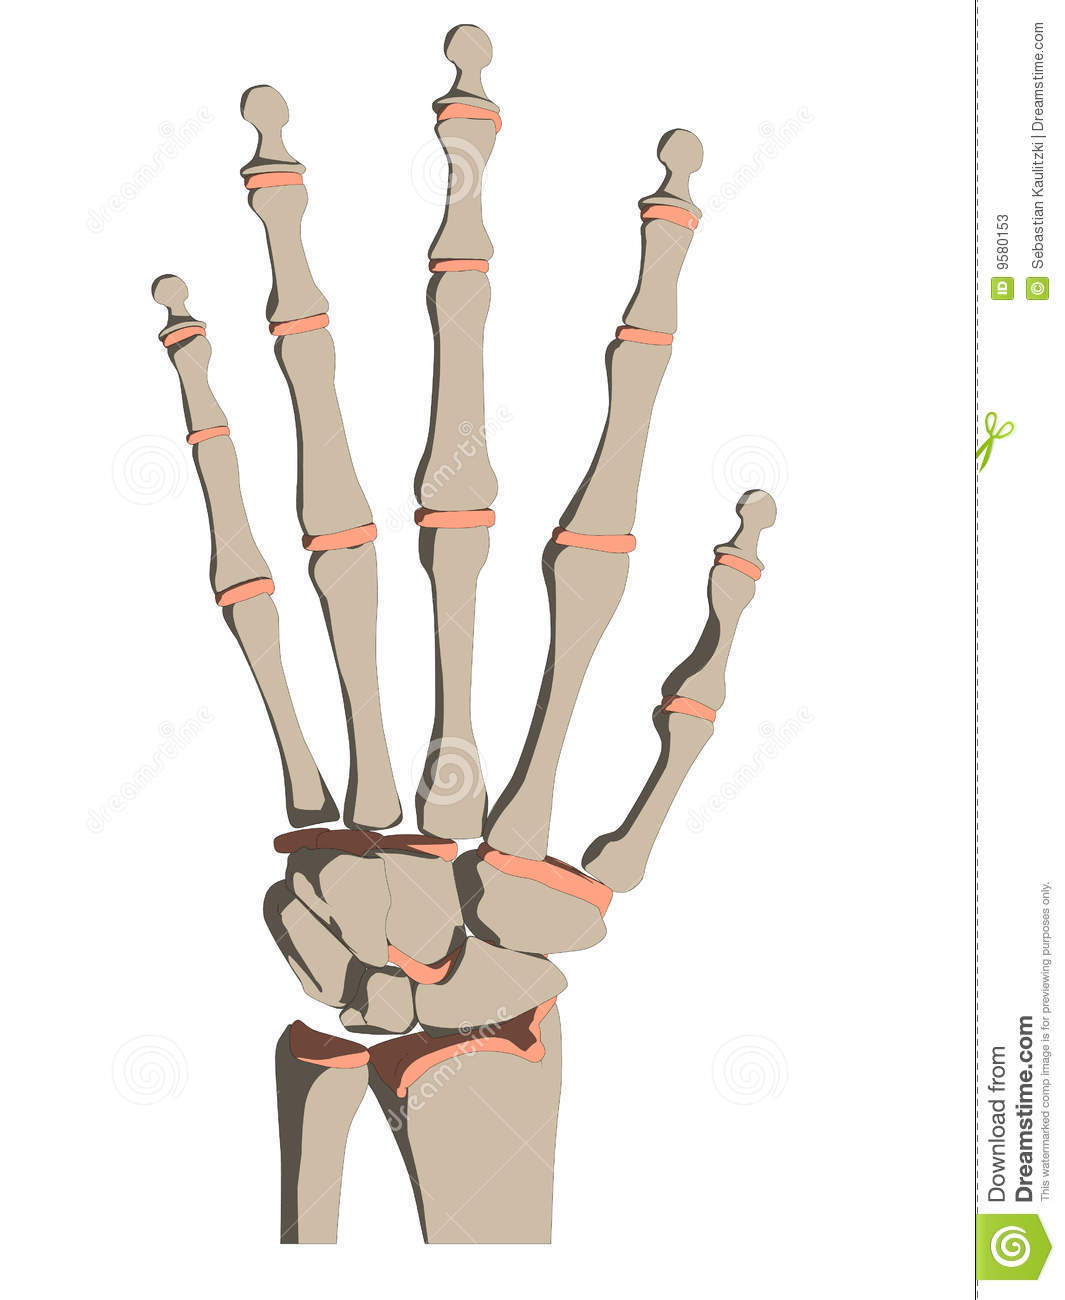 Skeletal Hand Stock Vector Illustration Of Wrist Anatomy 9580153